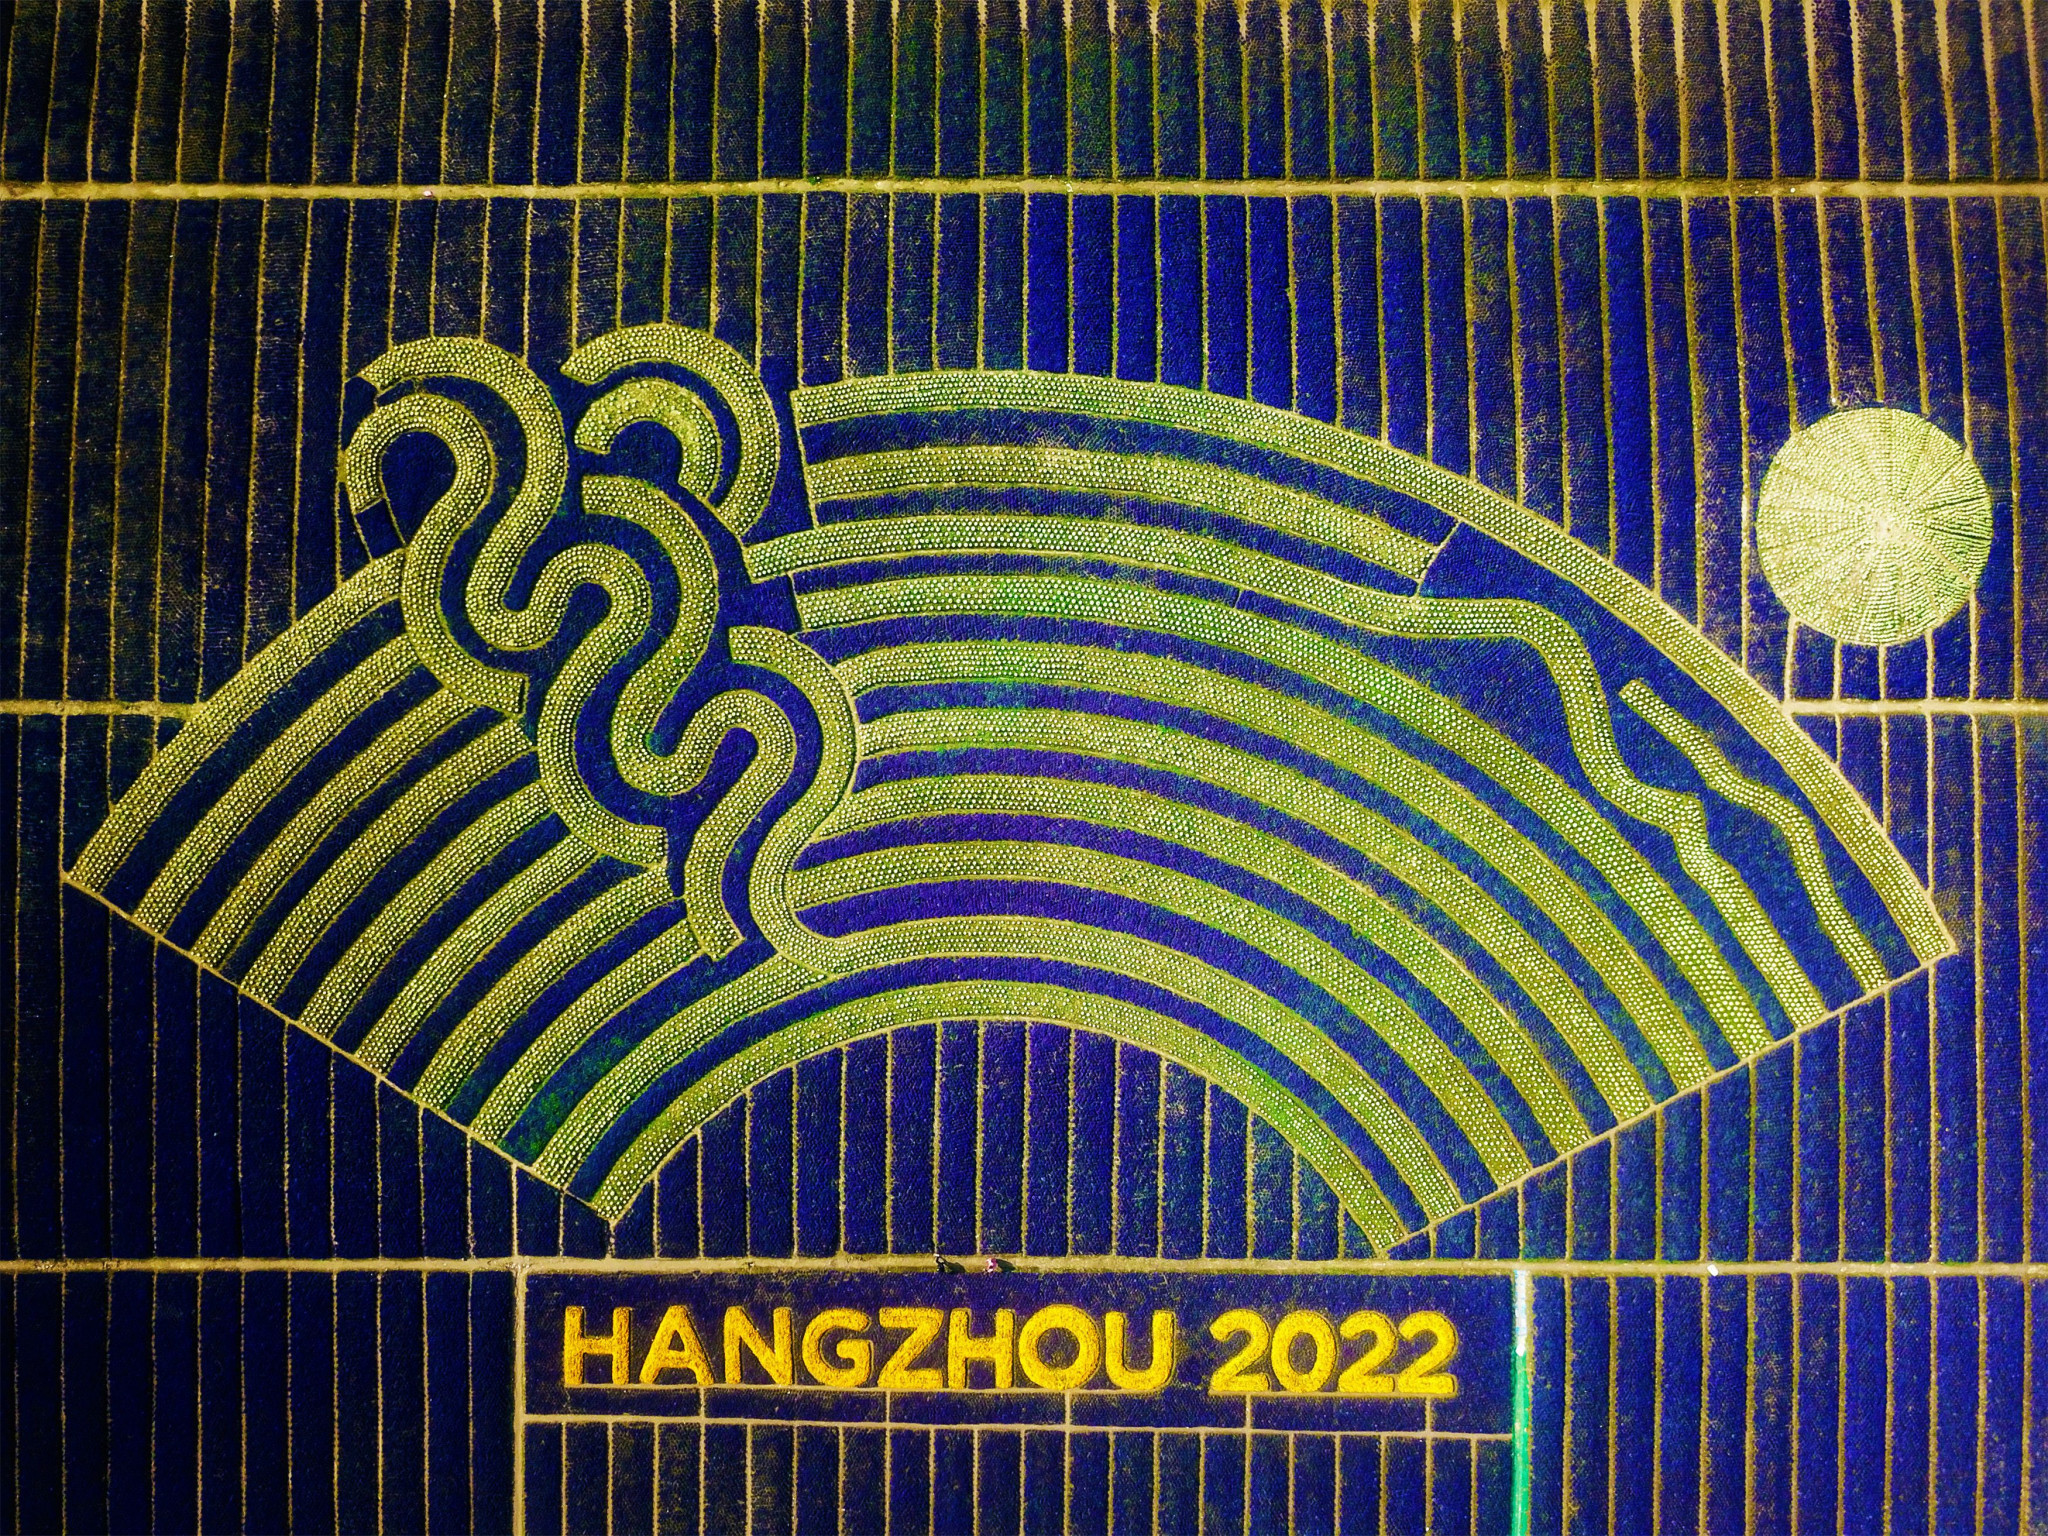 Hangzhou 2022 is set to be the third time that China hosts the Asian Games ©Getty Images